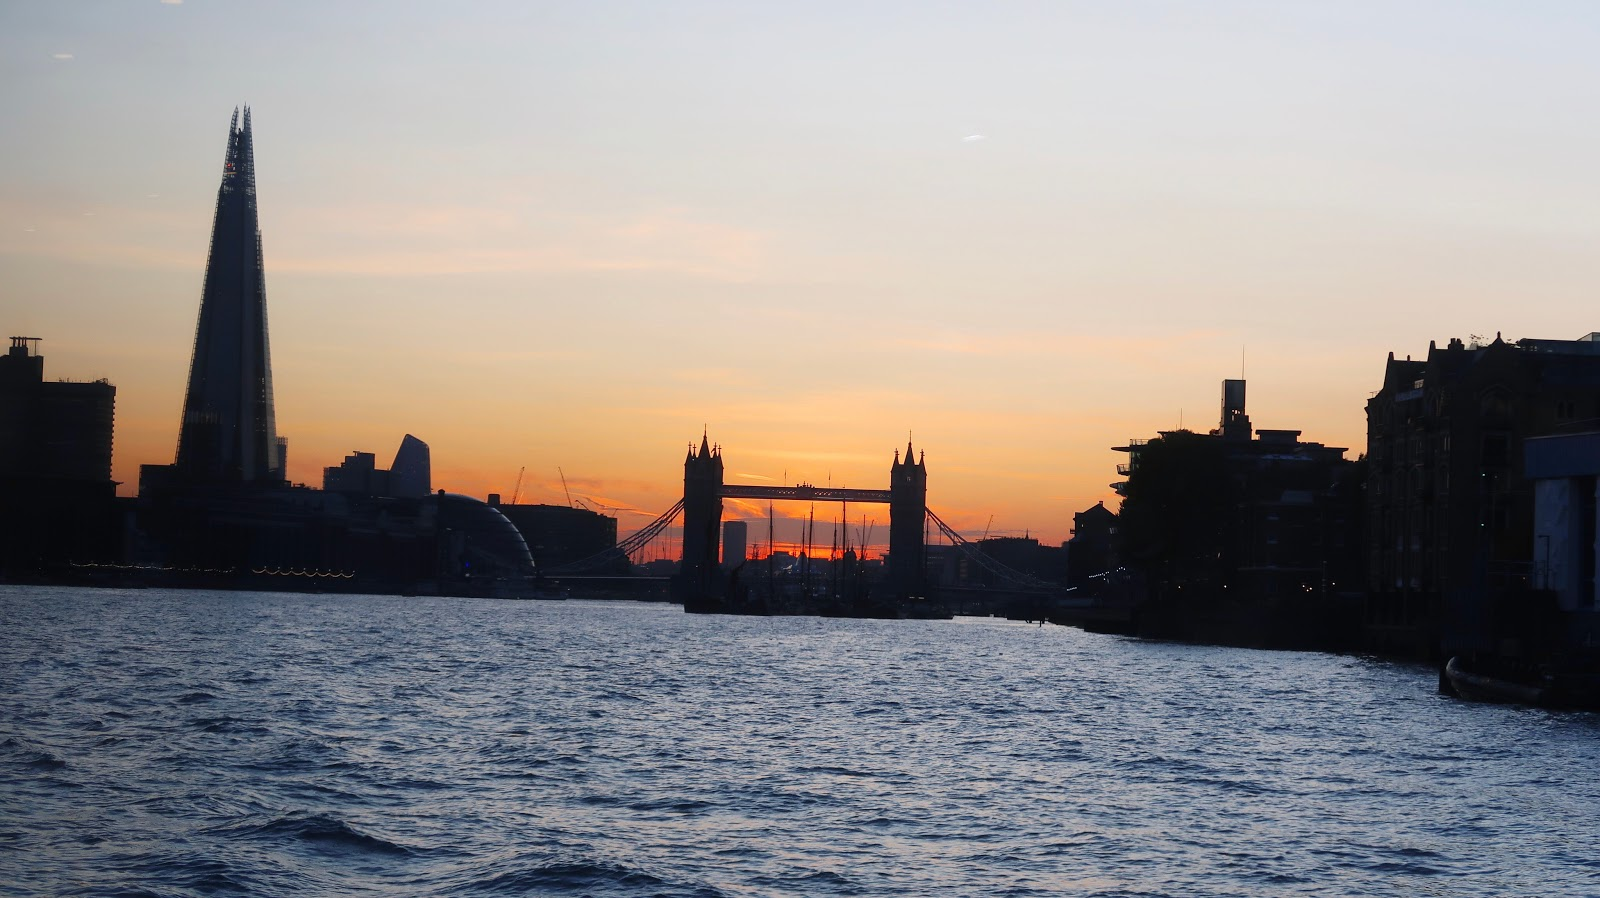 bateaux cruise london, dinner on the thames london, bateaux cruise review, london river cruise, buyagift river cruise